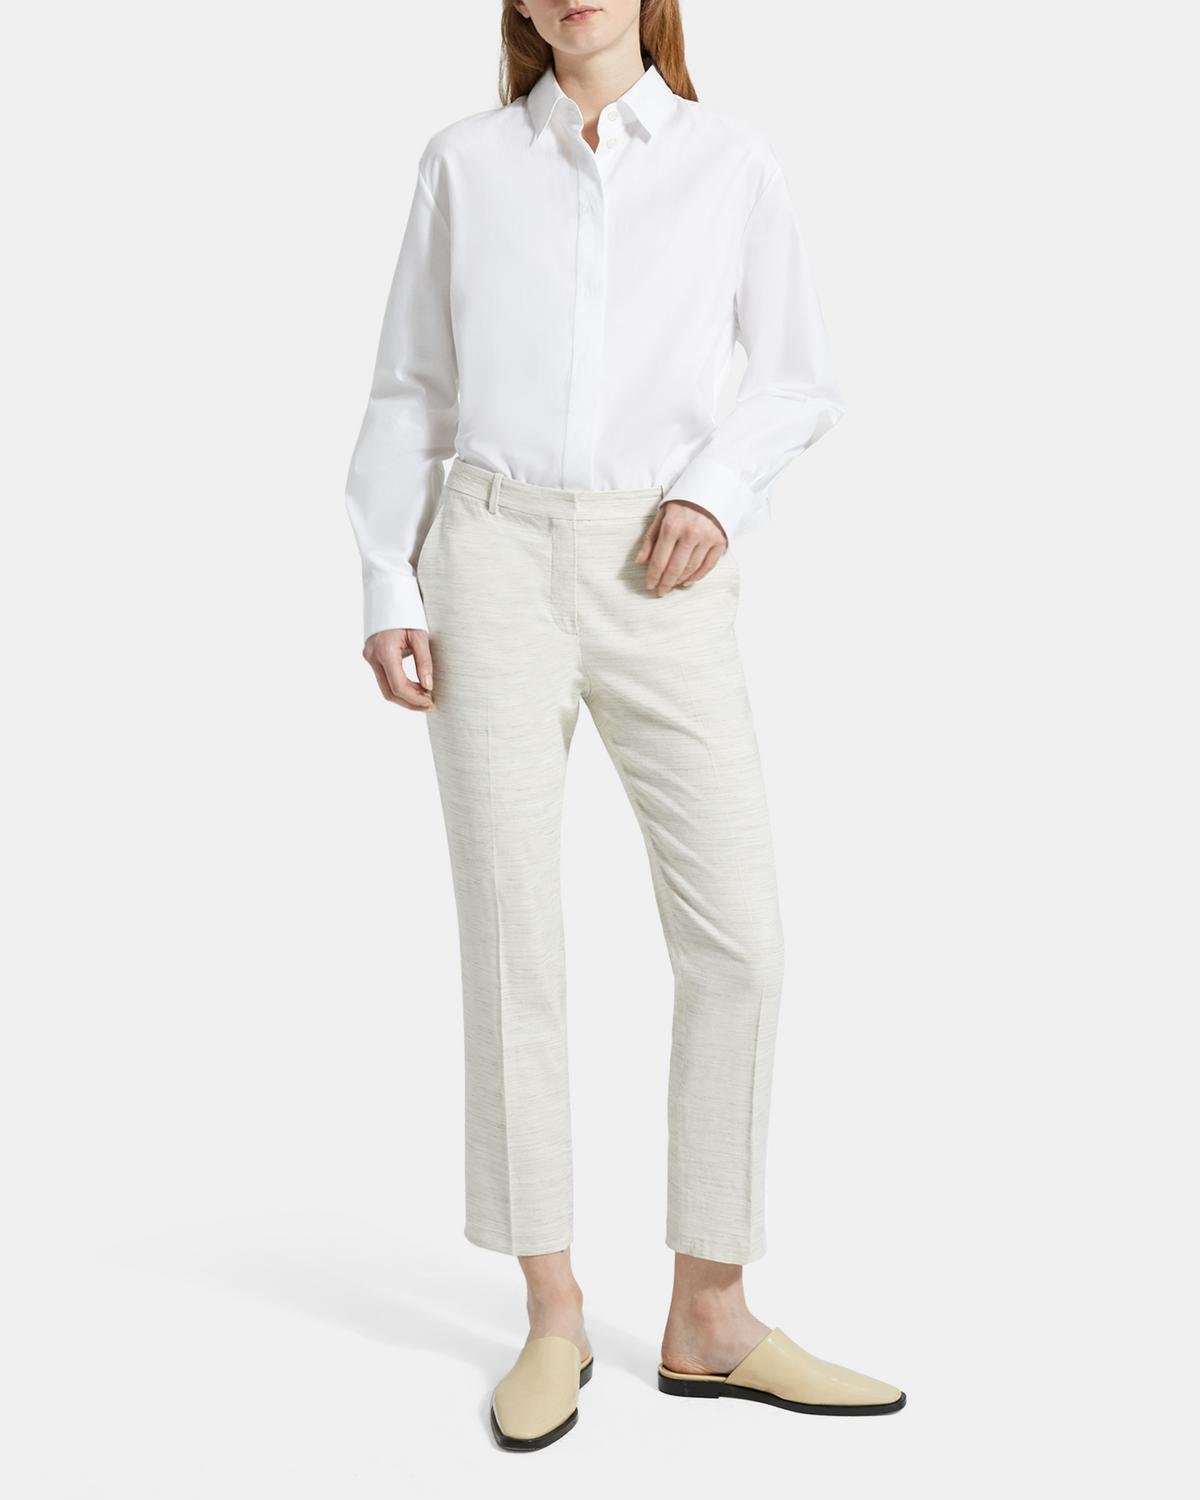 Sharkskin Crunch Cropped Tailored Trouser